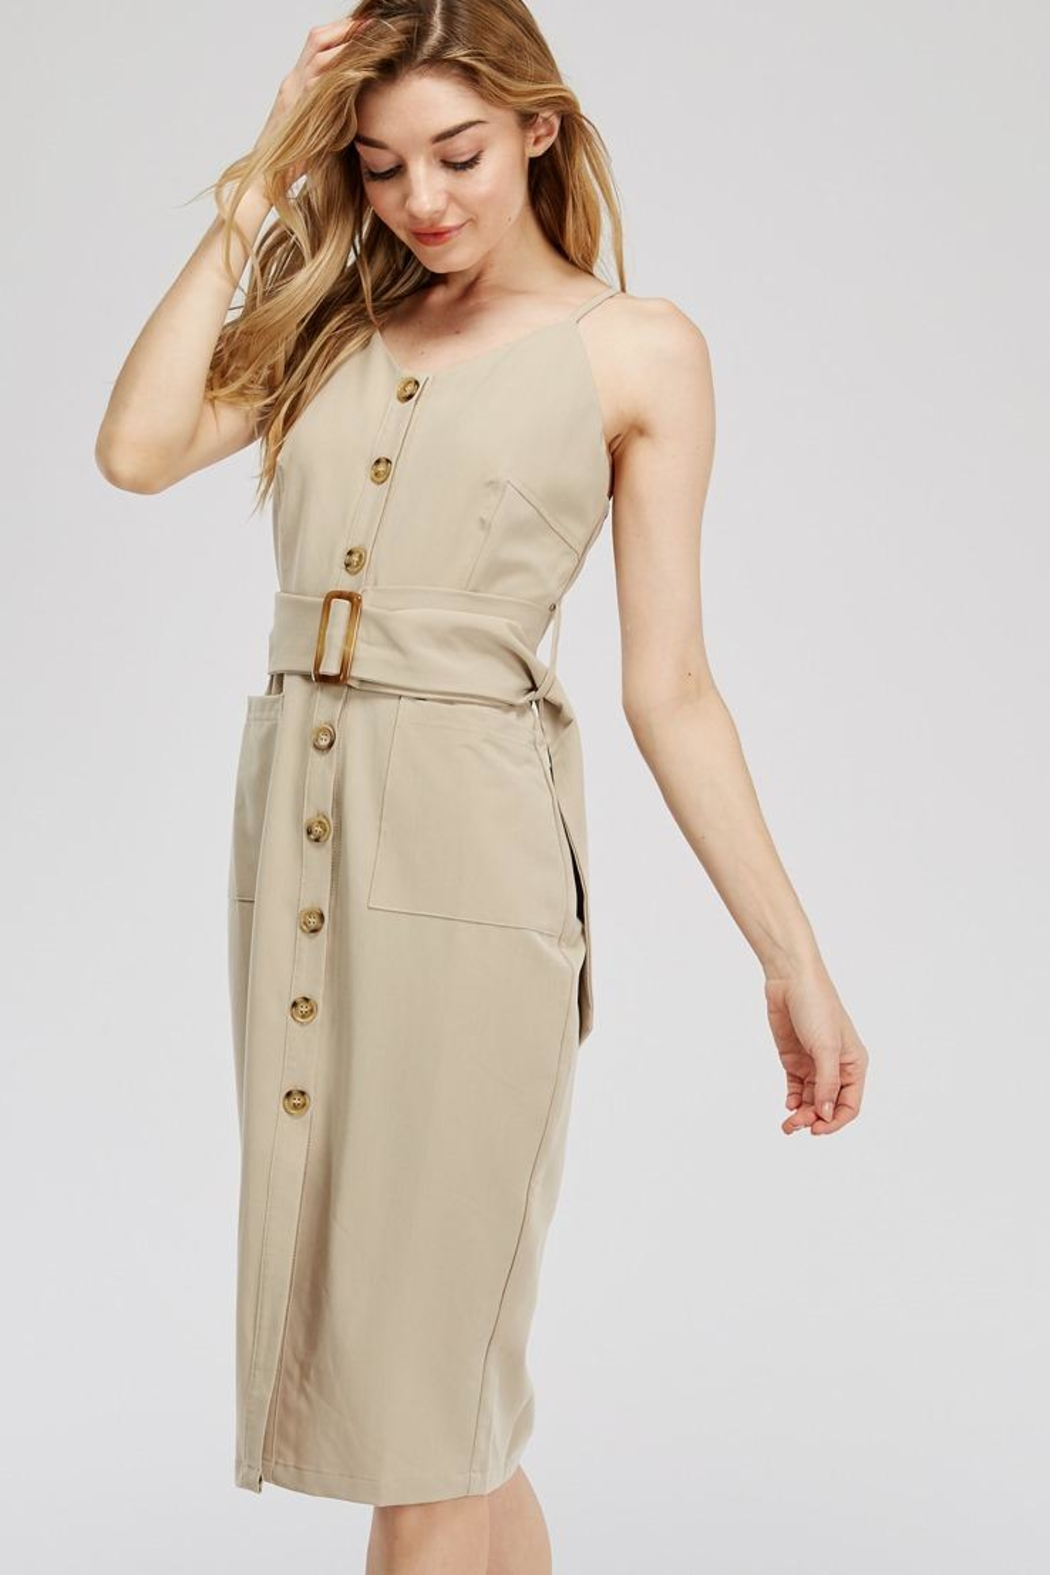 Main Strip Button-Up Belted Dress - Front Full Image